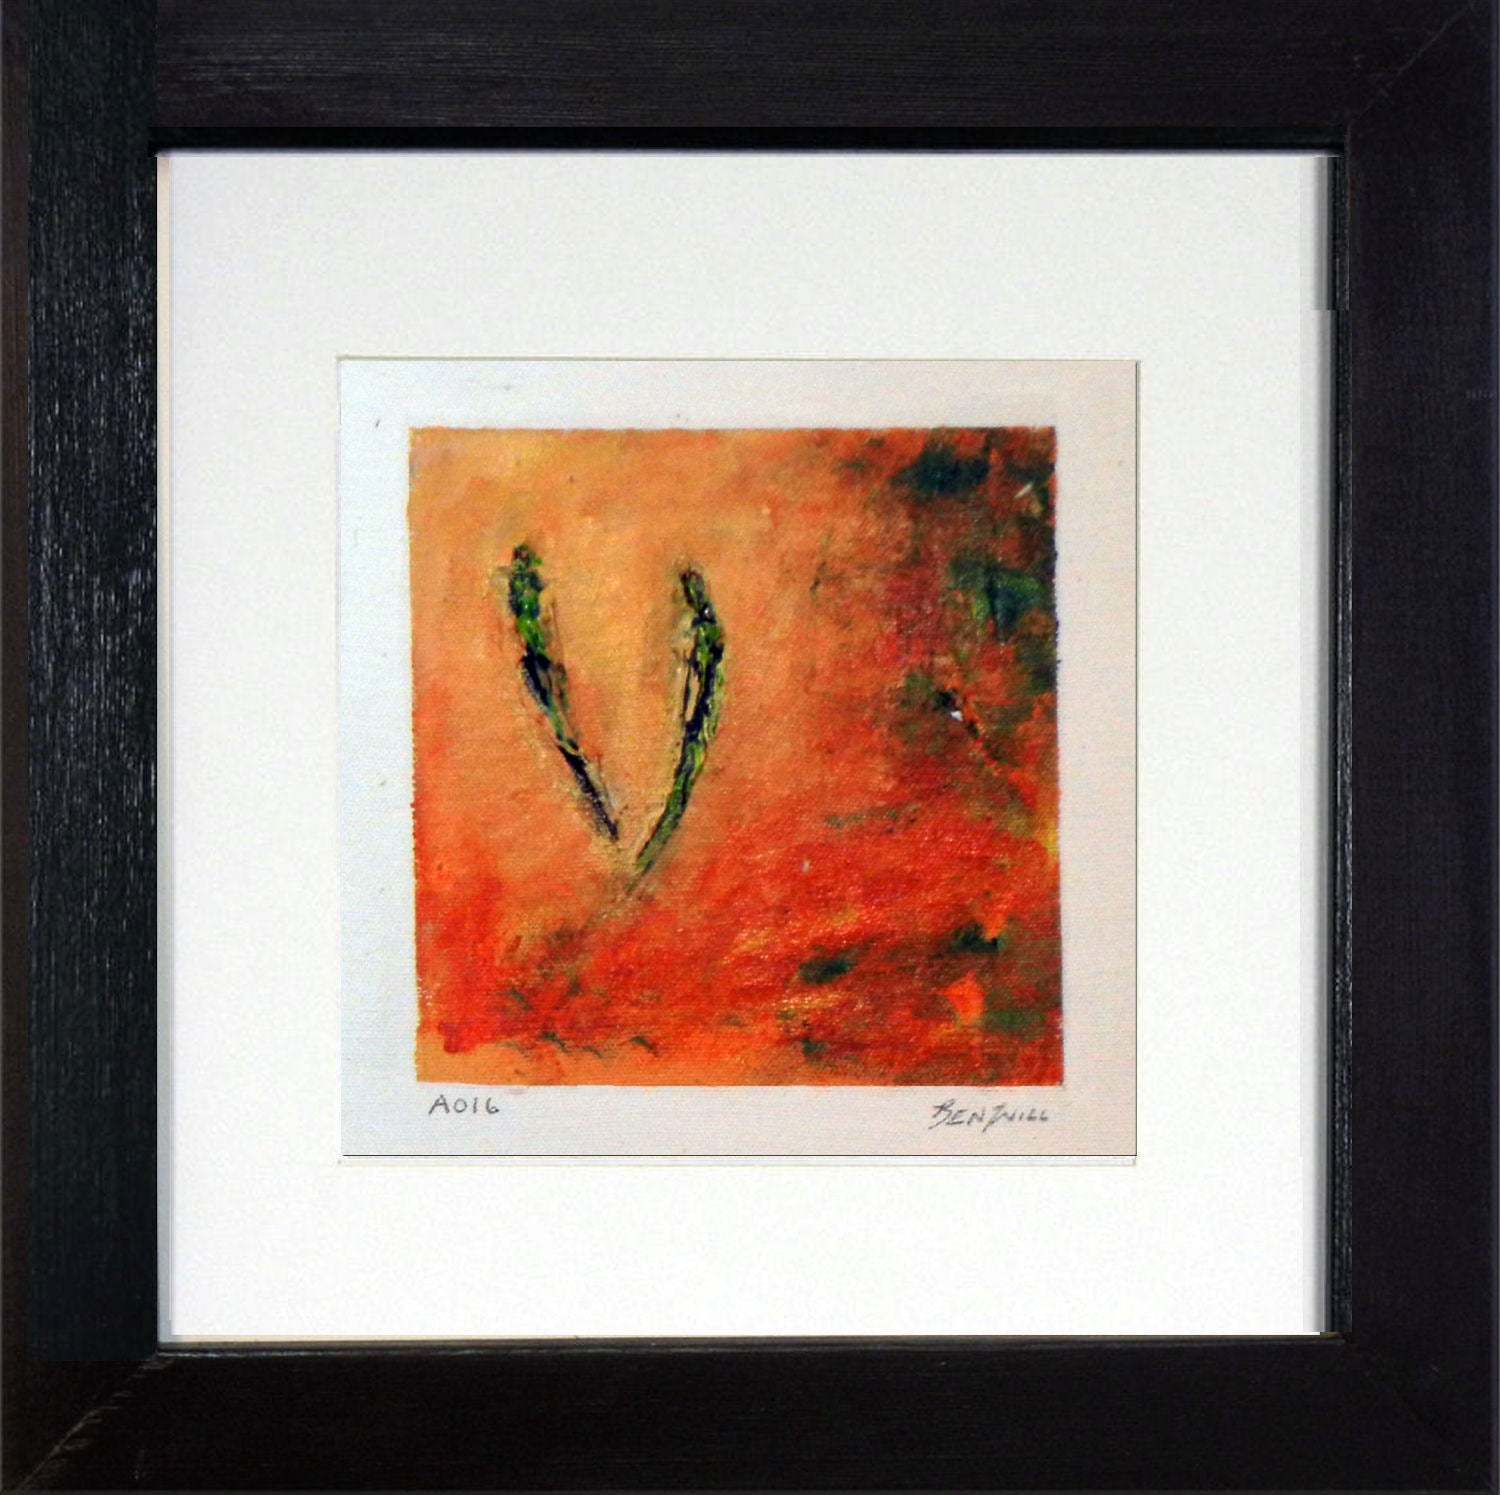 Framed Small Painting A016